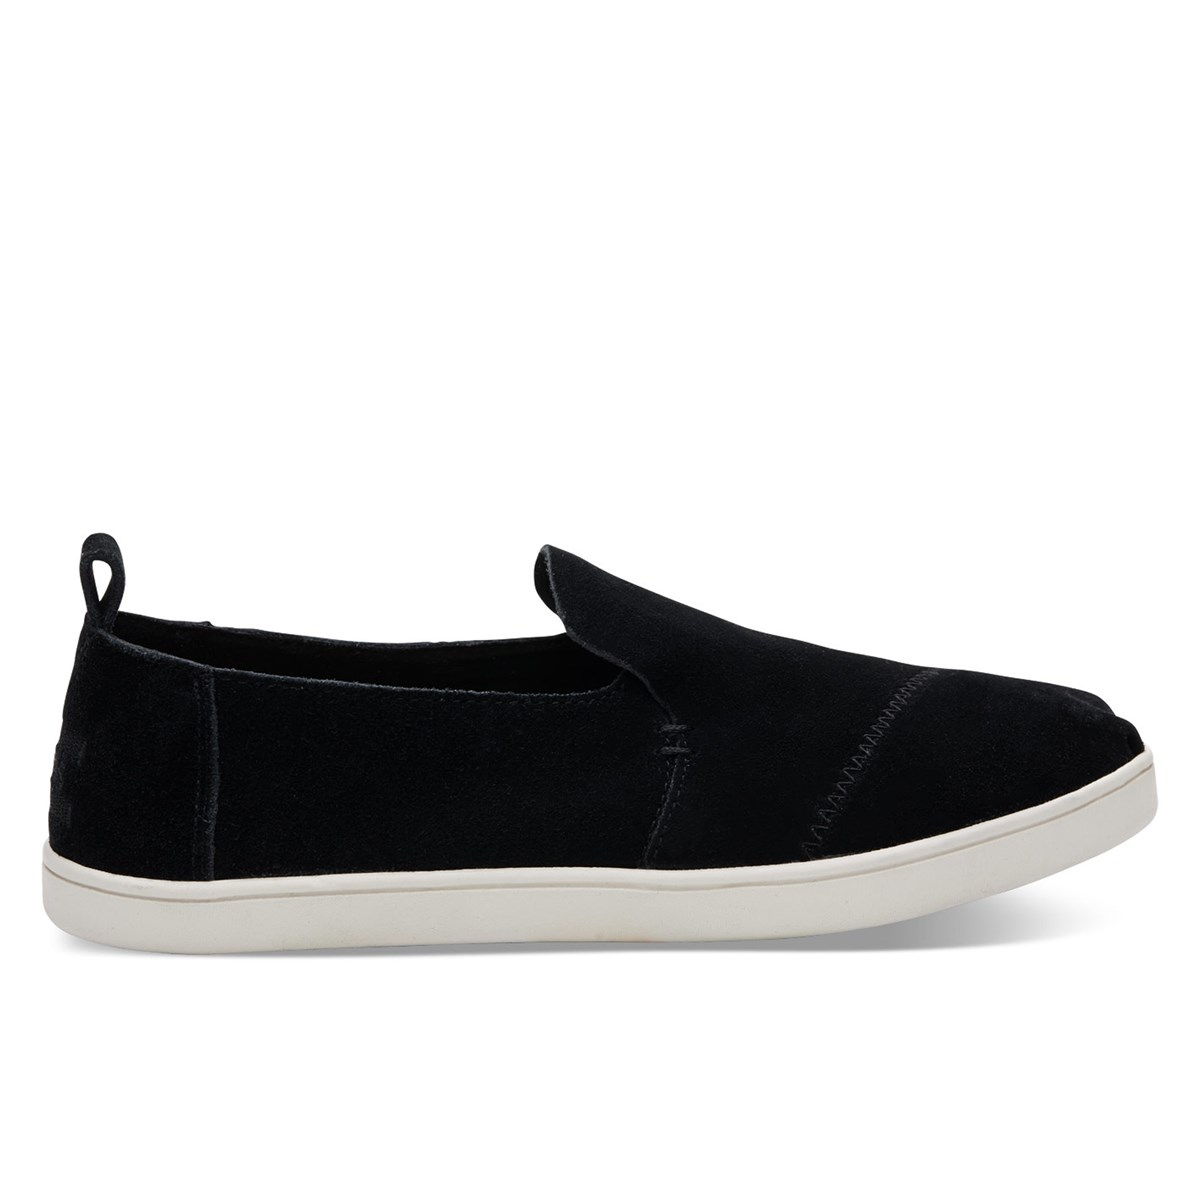 Women's Deconstructed Alpargata Black Slip-On